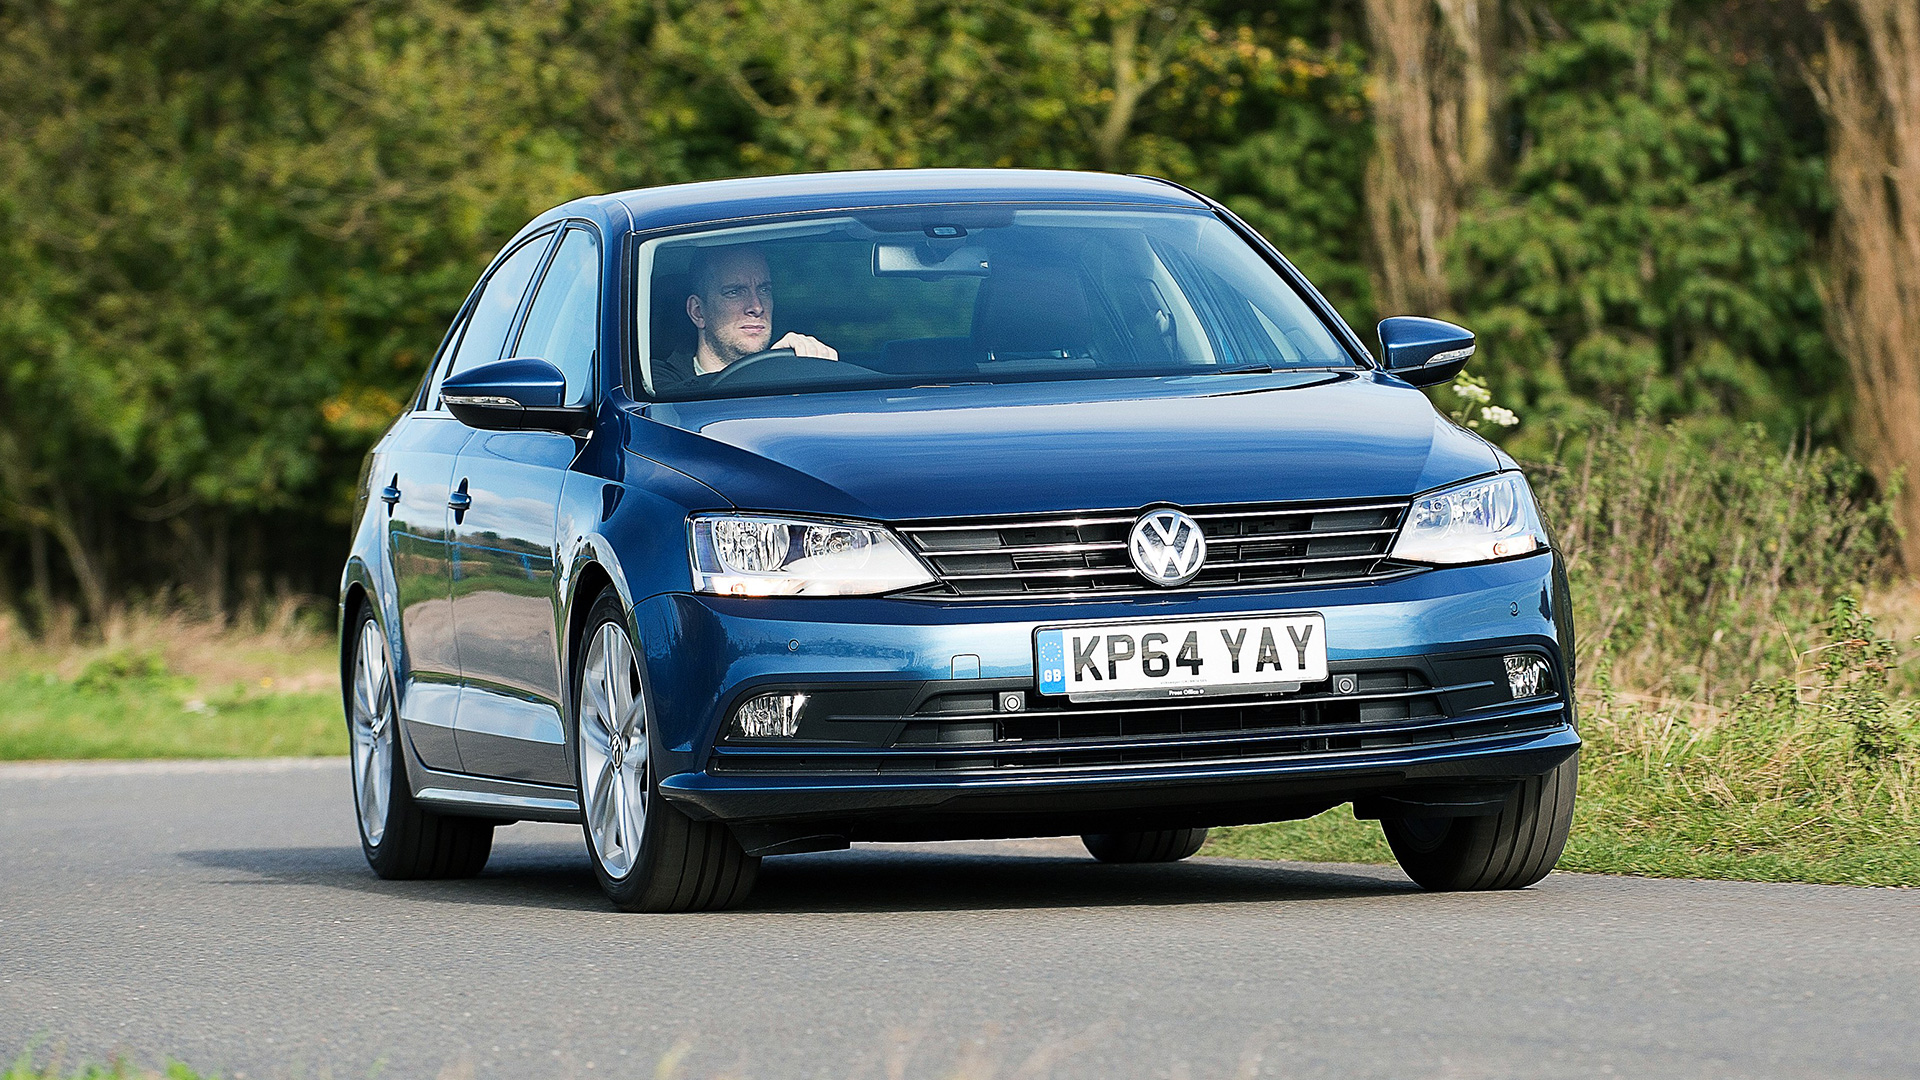 Used Volkswagen Jetta Sport Cars for Sale on Auto Trader UK